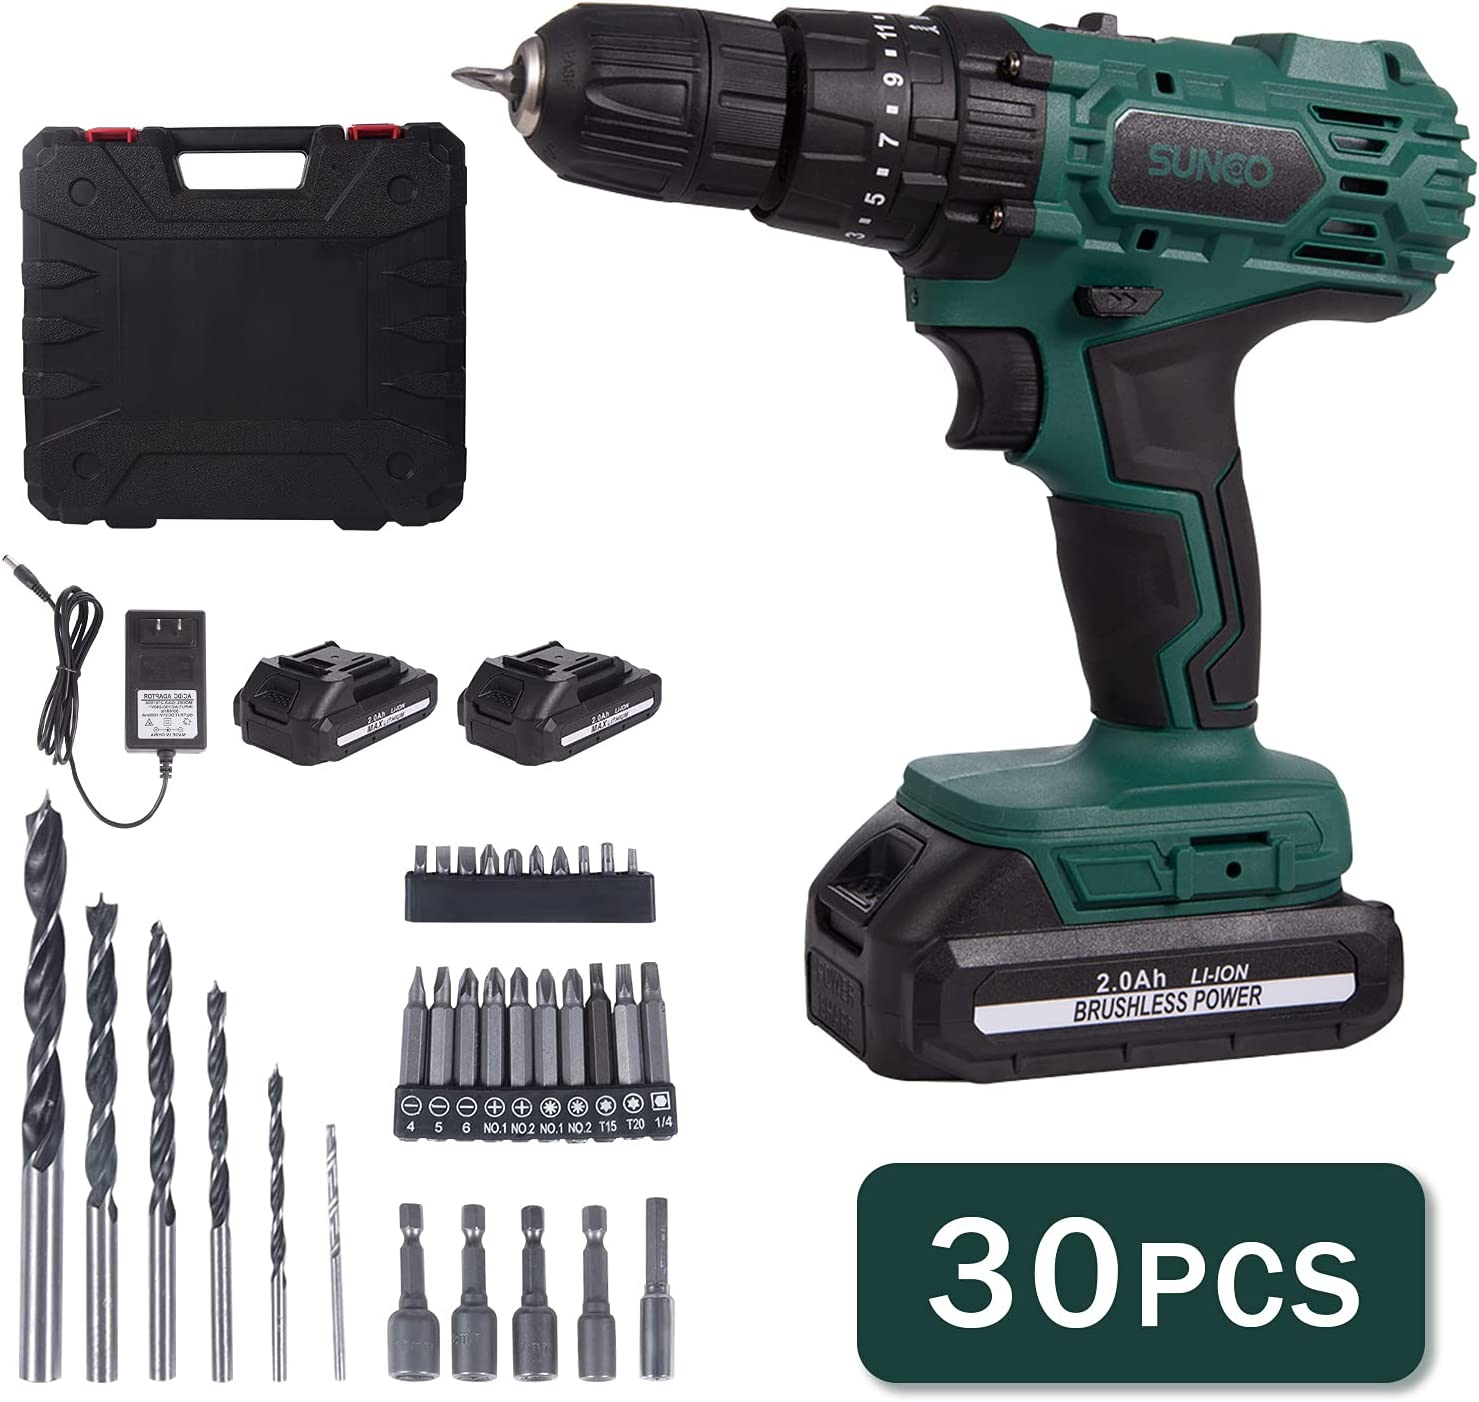 Cordless Drill Set Max 52% OFF with Carrying Case 21V Drive Max 72% OFF Brushless